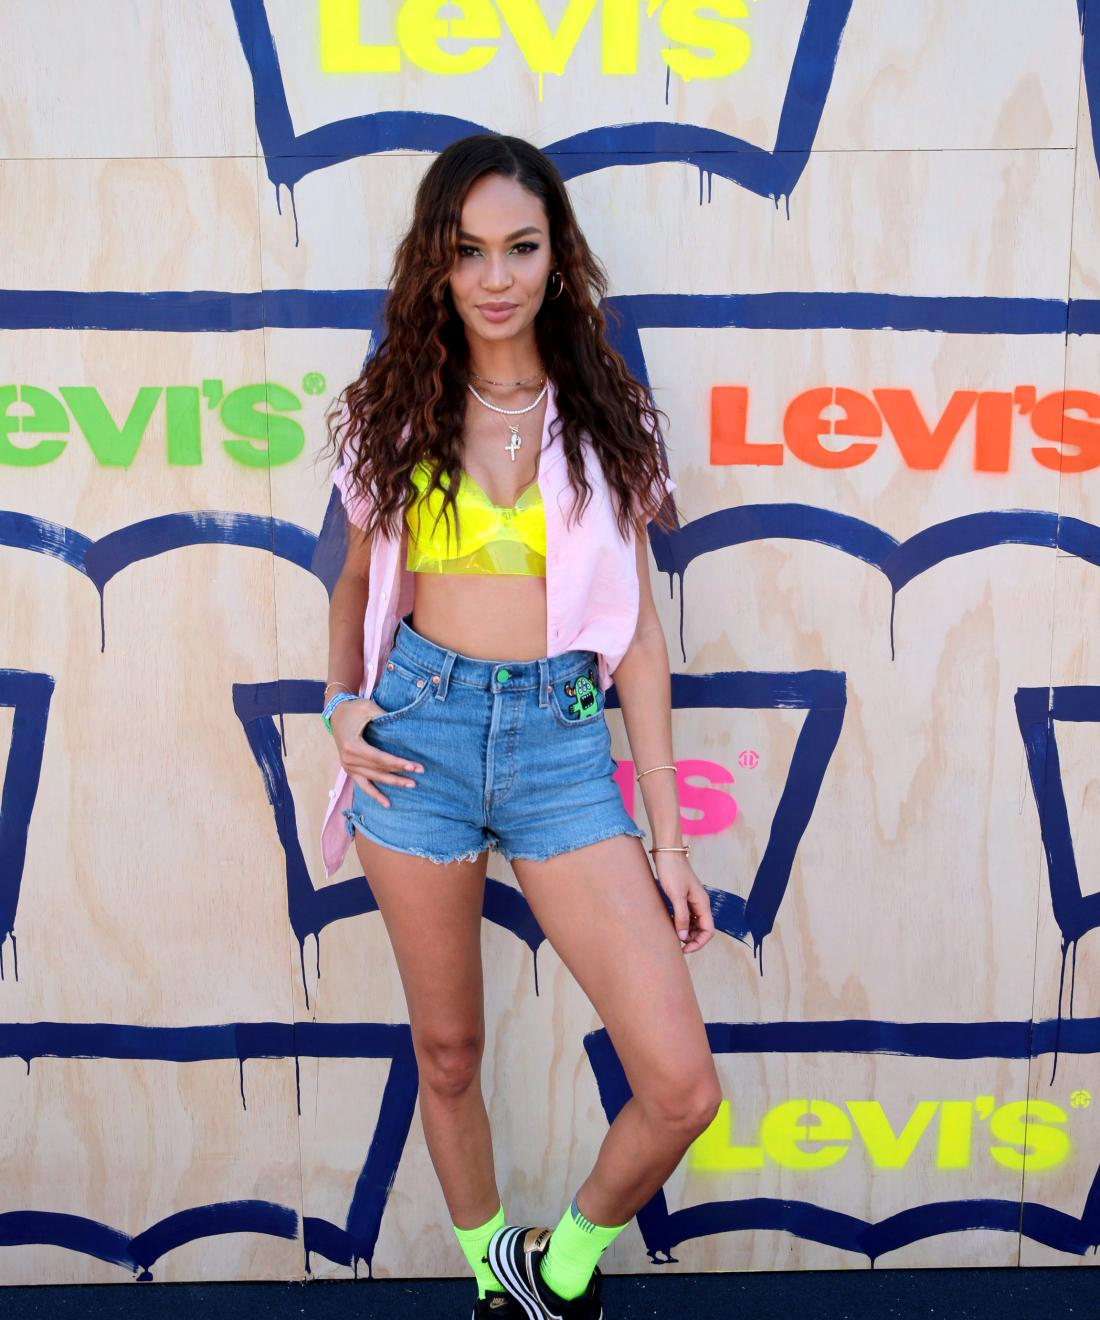 Levi's women's sales rise on high-rise jeans and cutoff shorts